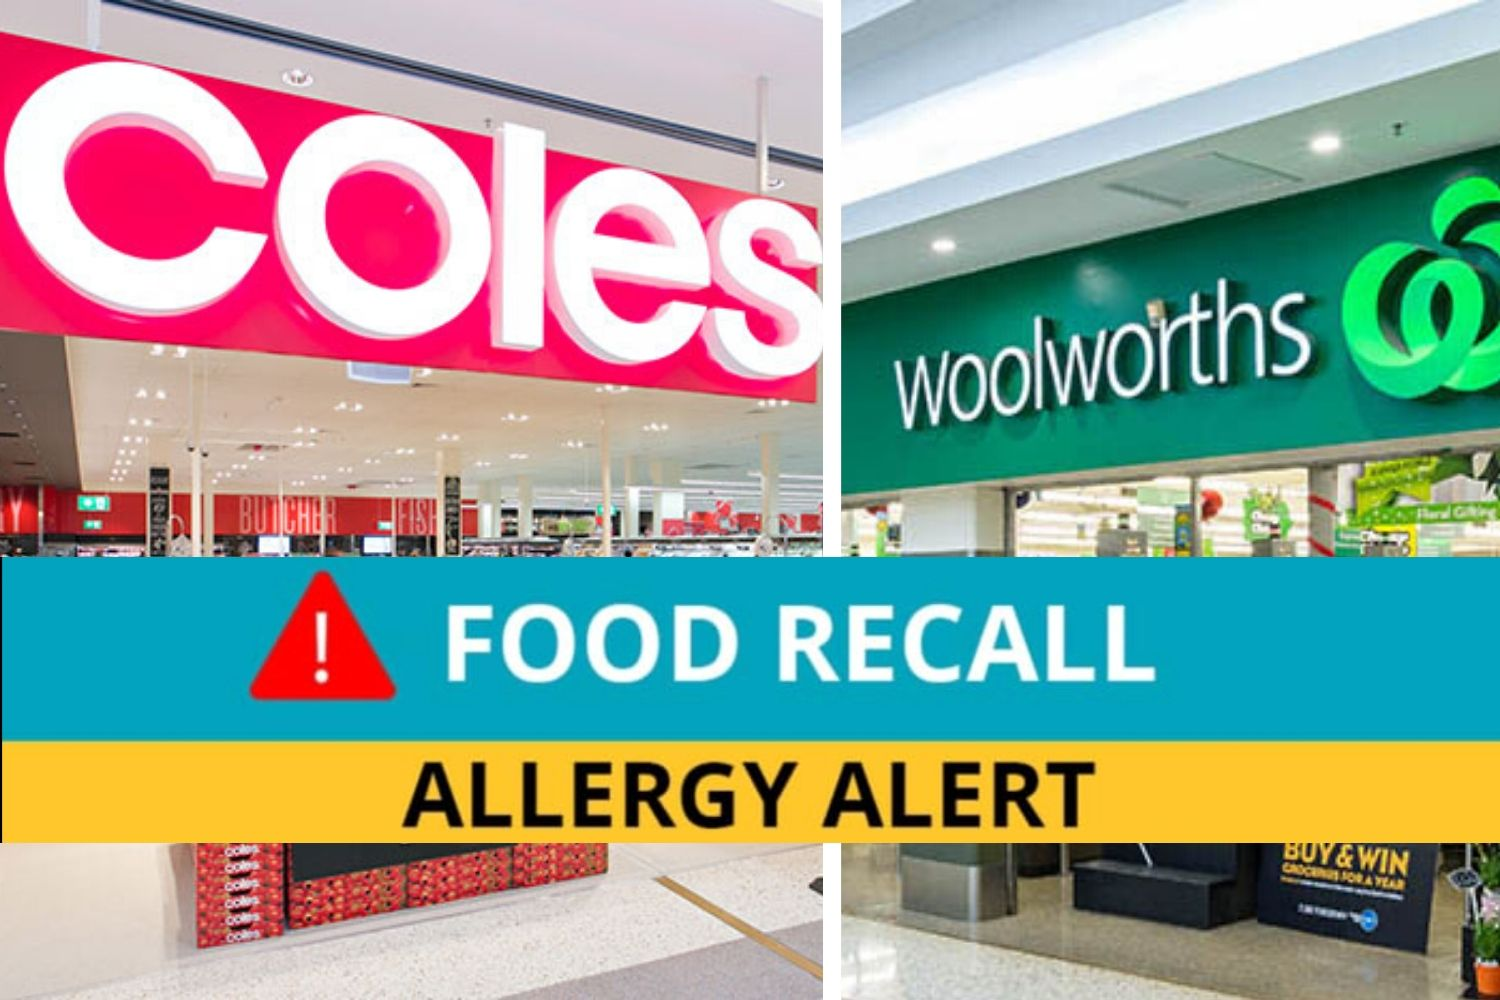 Urgent Woolworths And Coles Supermarket Food Recall Two Popular Sauces Practical Parenting Australia